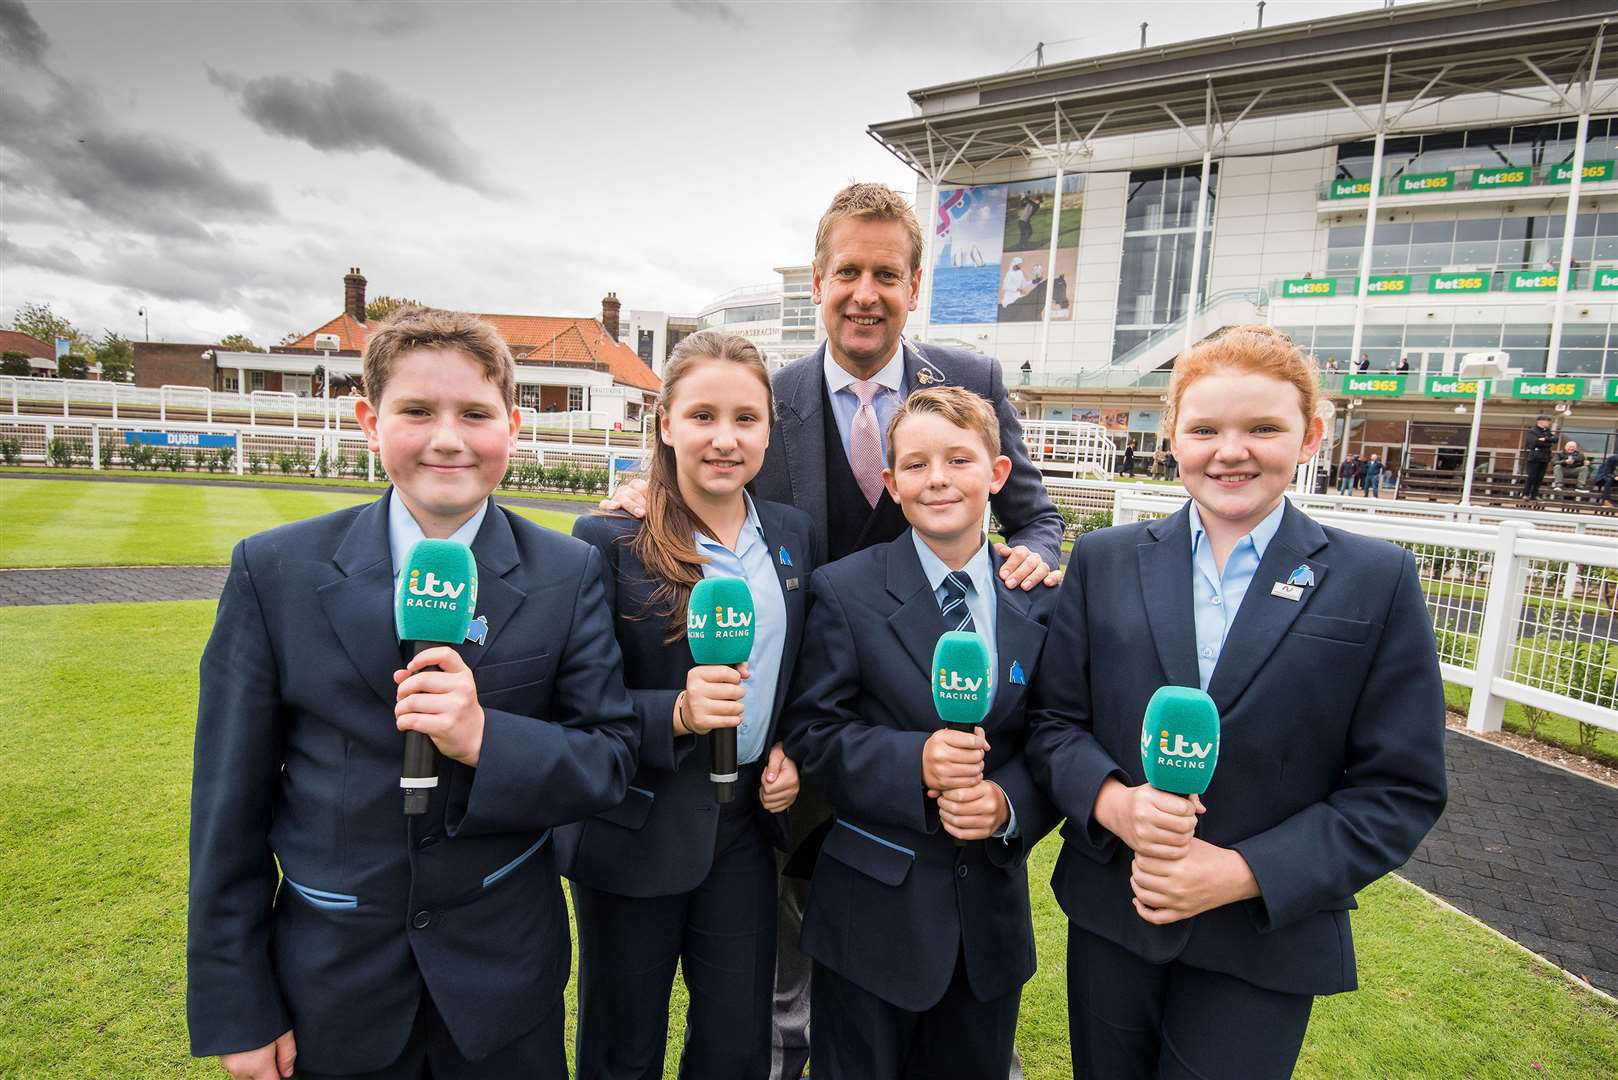 Newmarket Academy Godolphin Beacon Project Racing To School Education week Dubai Future Champions Festival The Newmarket Academy Godolphin Beacon Project Cornwallis Stakes. Students with ITV racing presenters Ed Chamberlin and Francesca Cumani.Picture Mark Westley. (34947002)